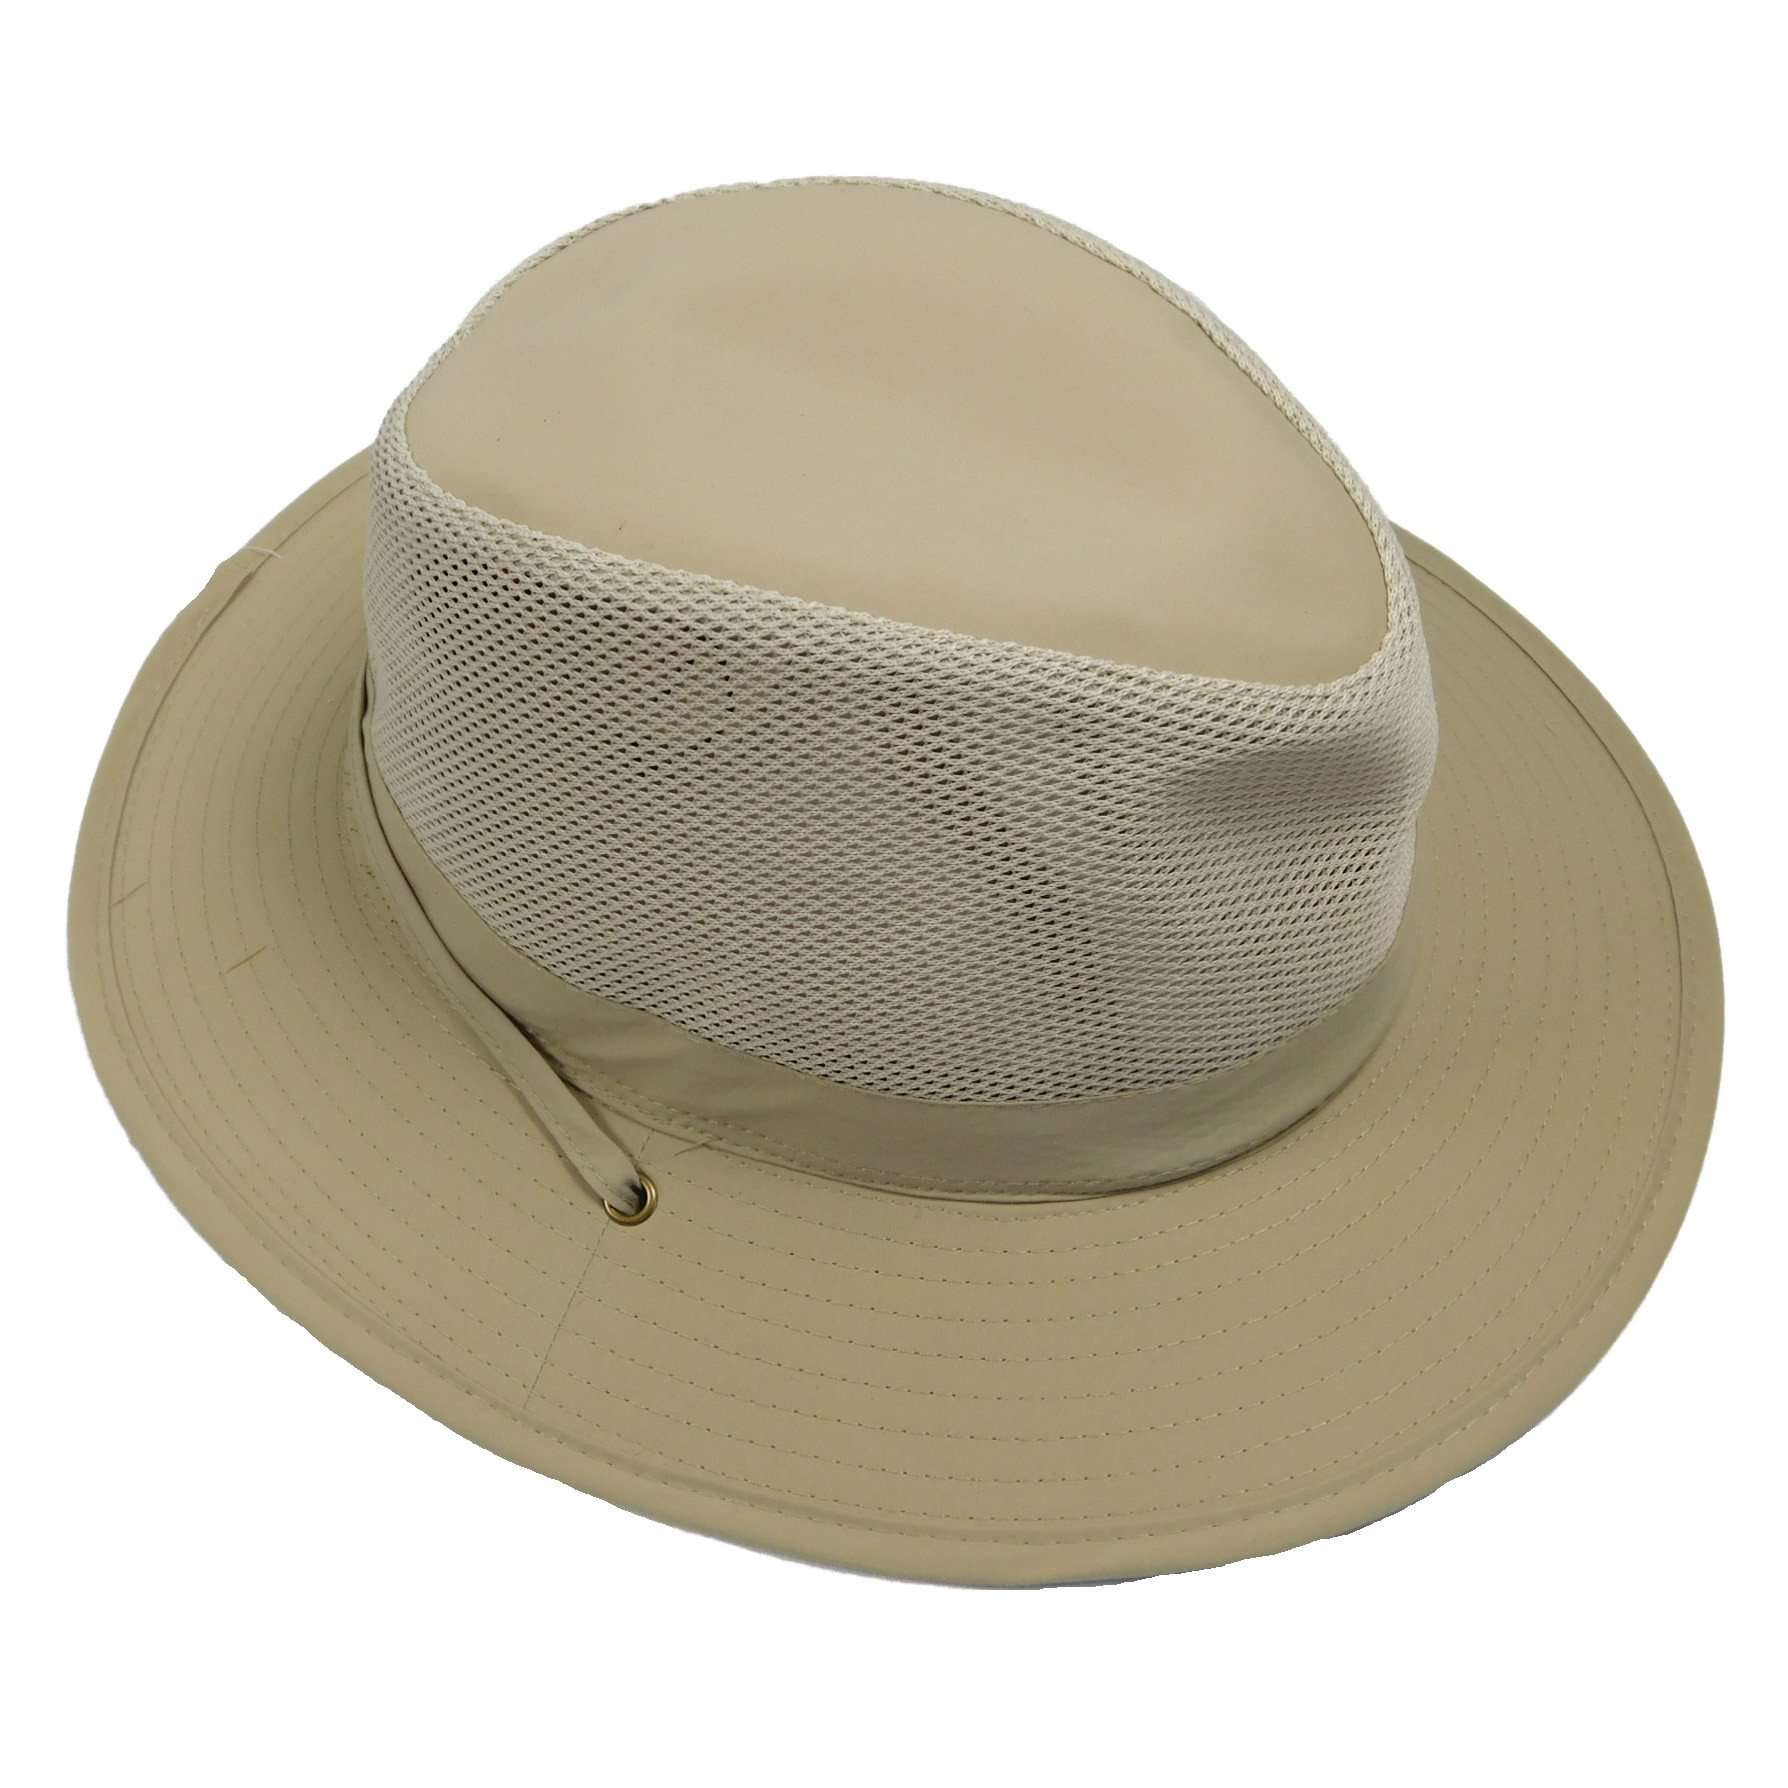 Stetson No Fly Zone Safari Hat - SetarTrading Hats